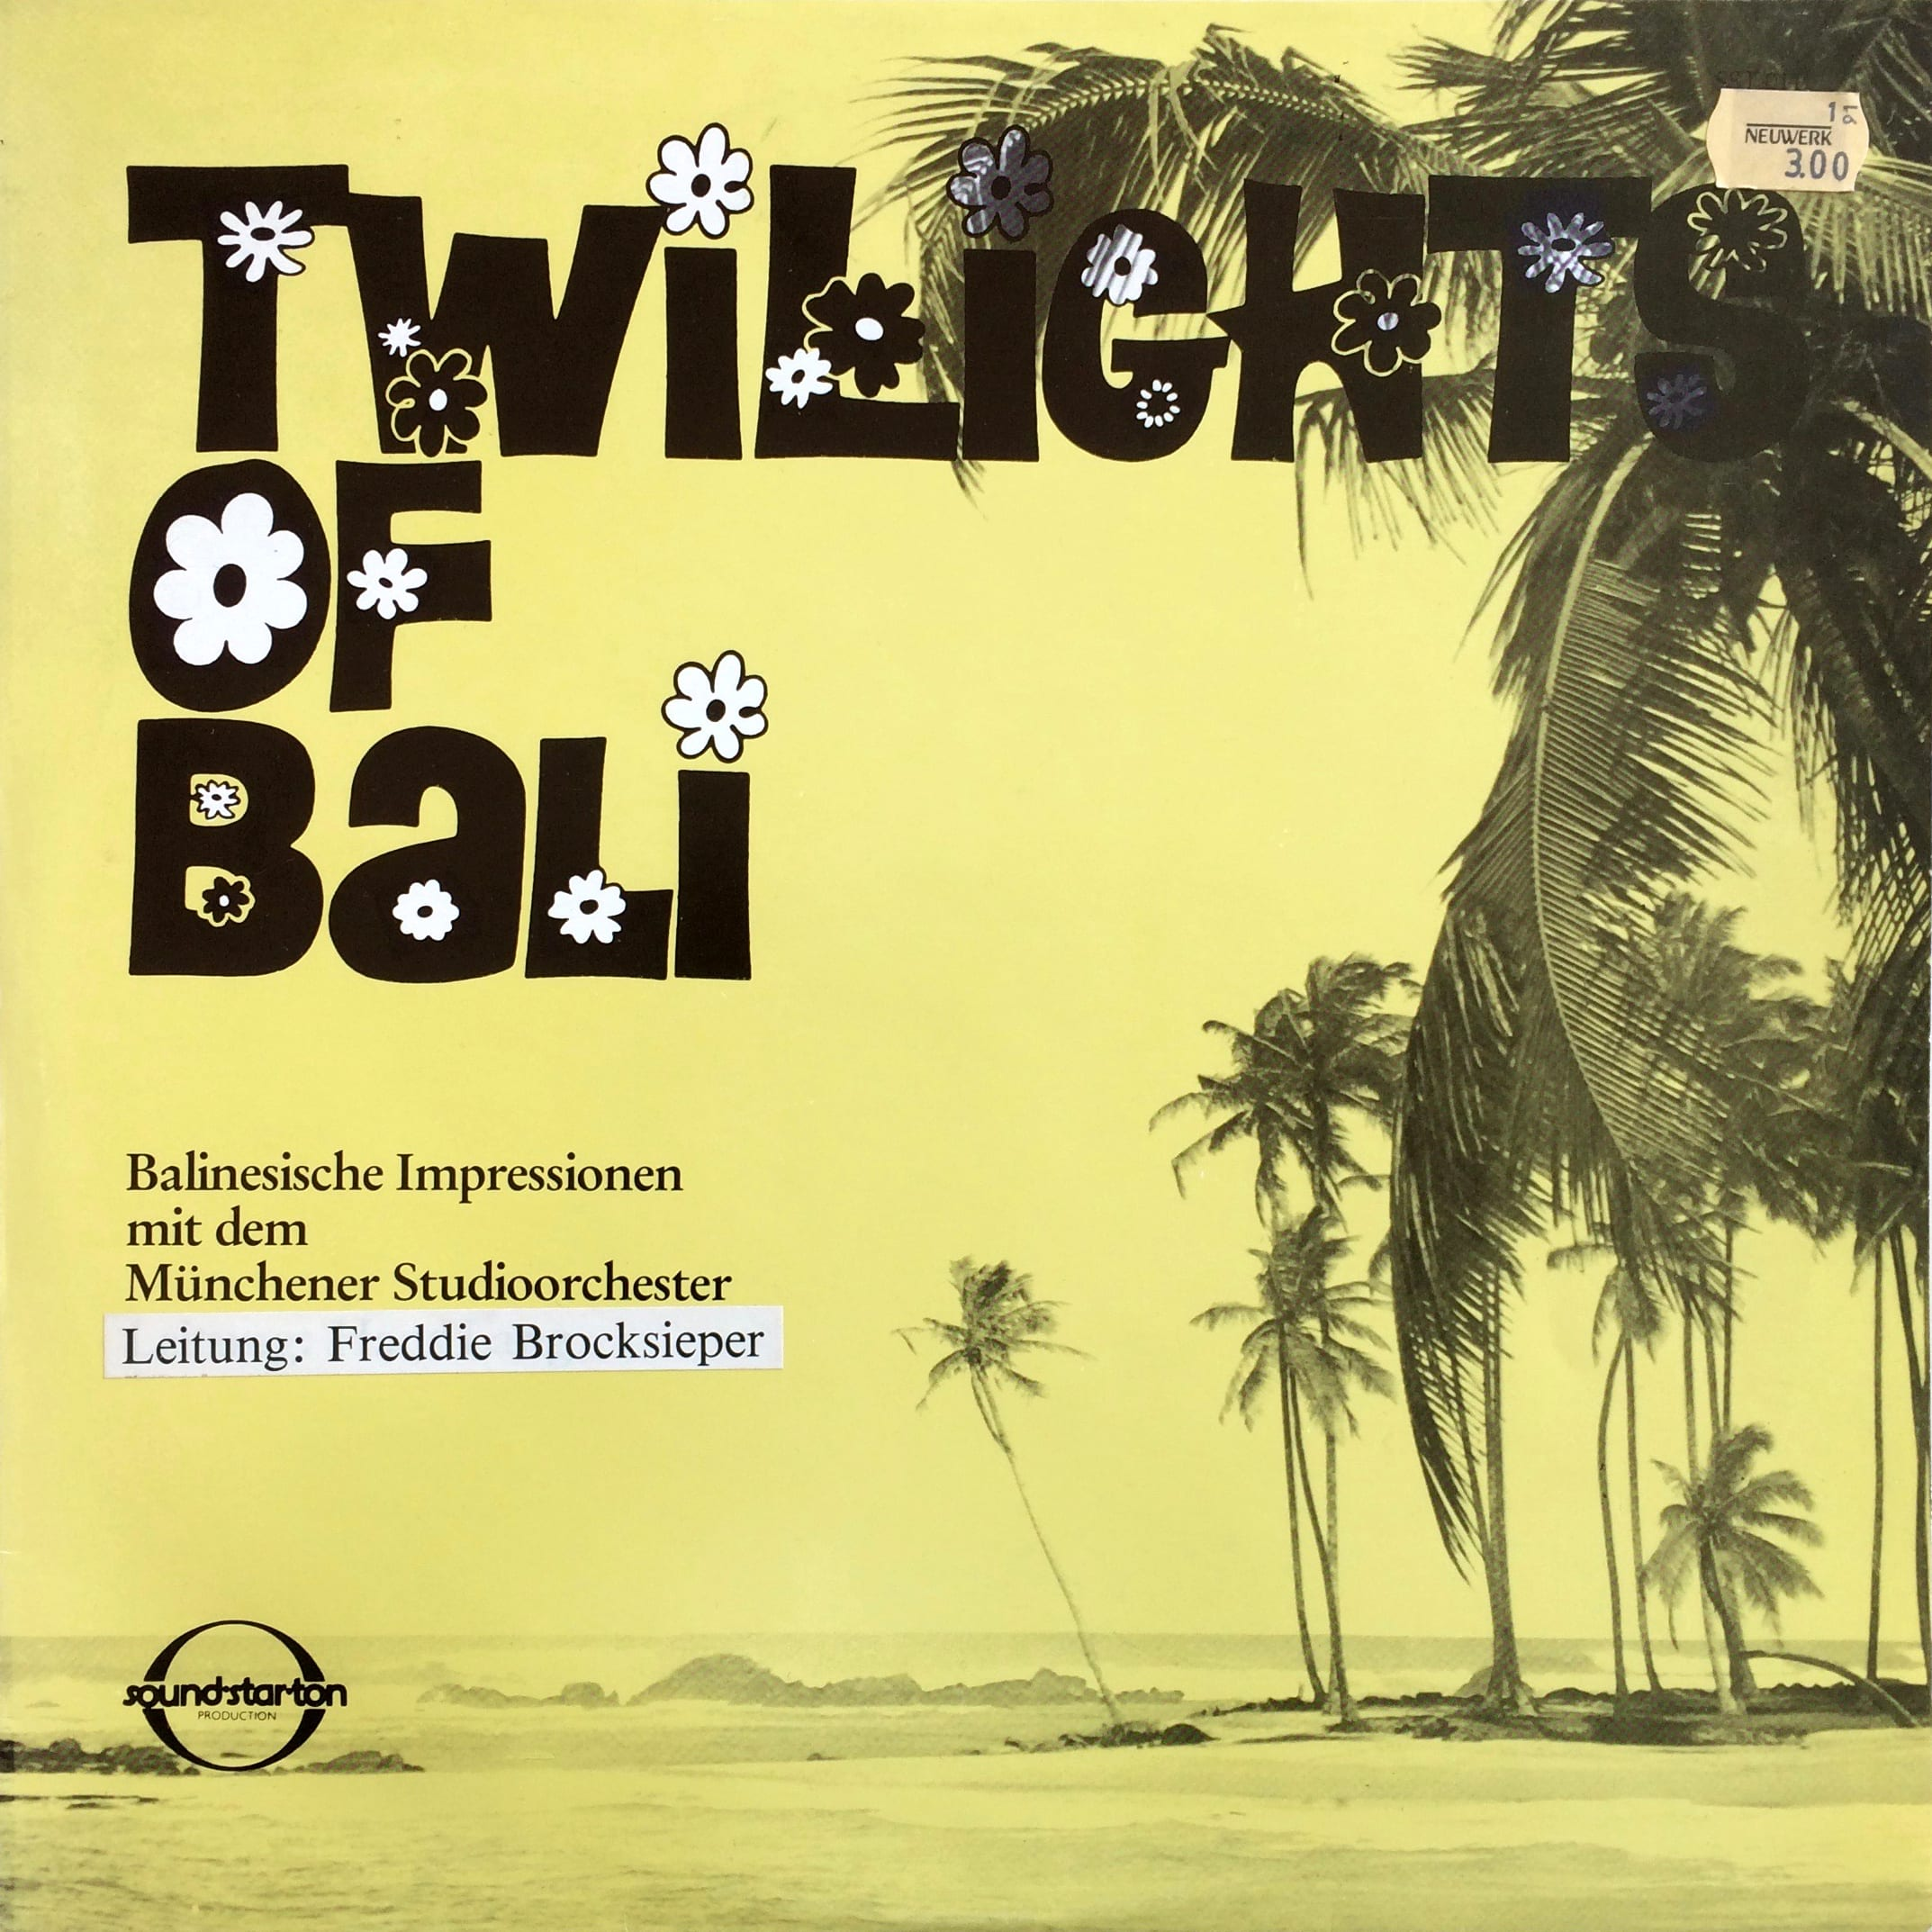 Münchner Studioorchester TWILIGHTS OF BALI – Sound-Star-Ton ‎– SST 0141 Germany 1979